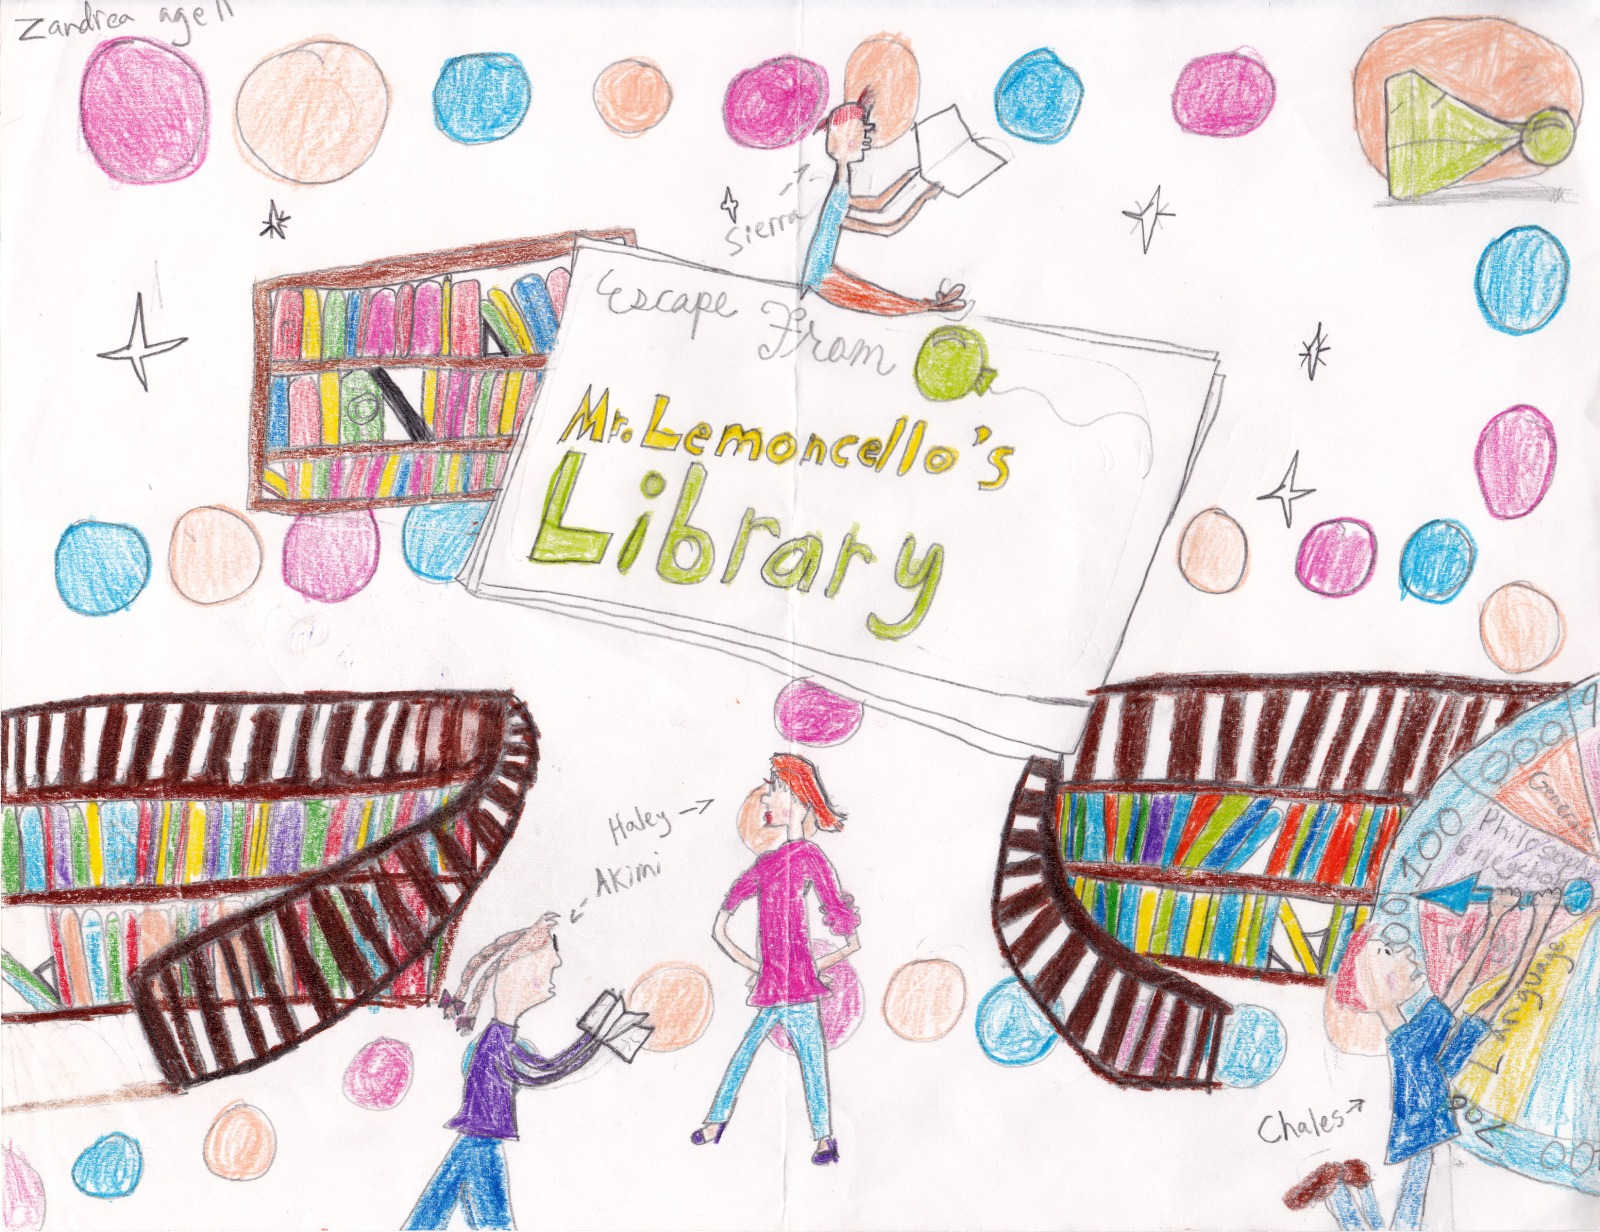 Escape From Mr. Lemoncello's Library, artwork by Zandrea Thompson